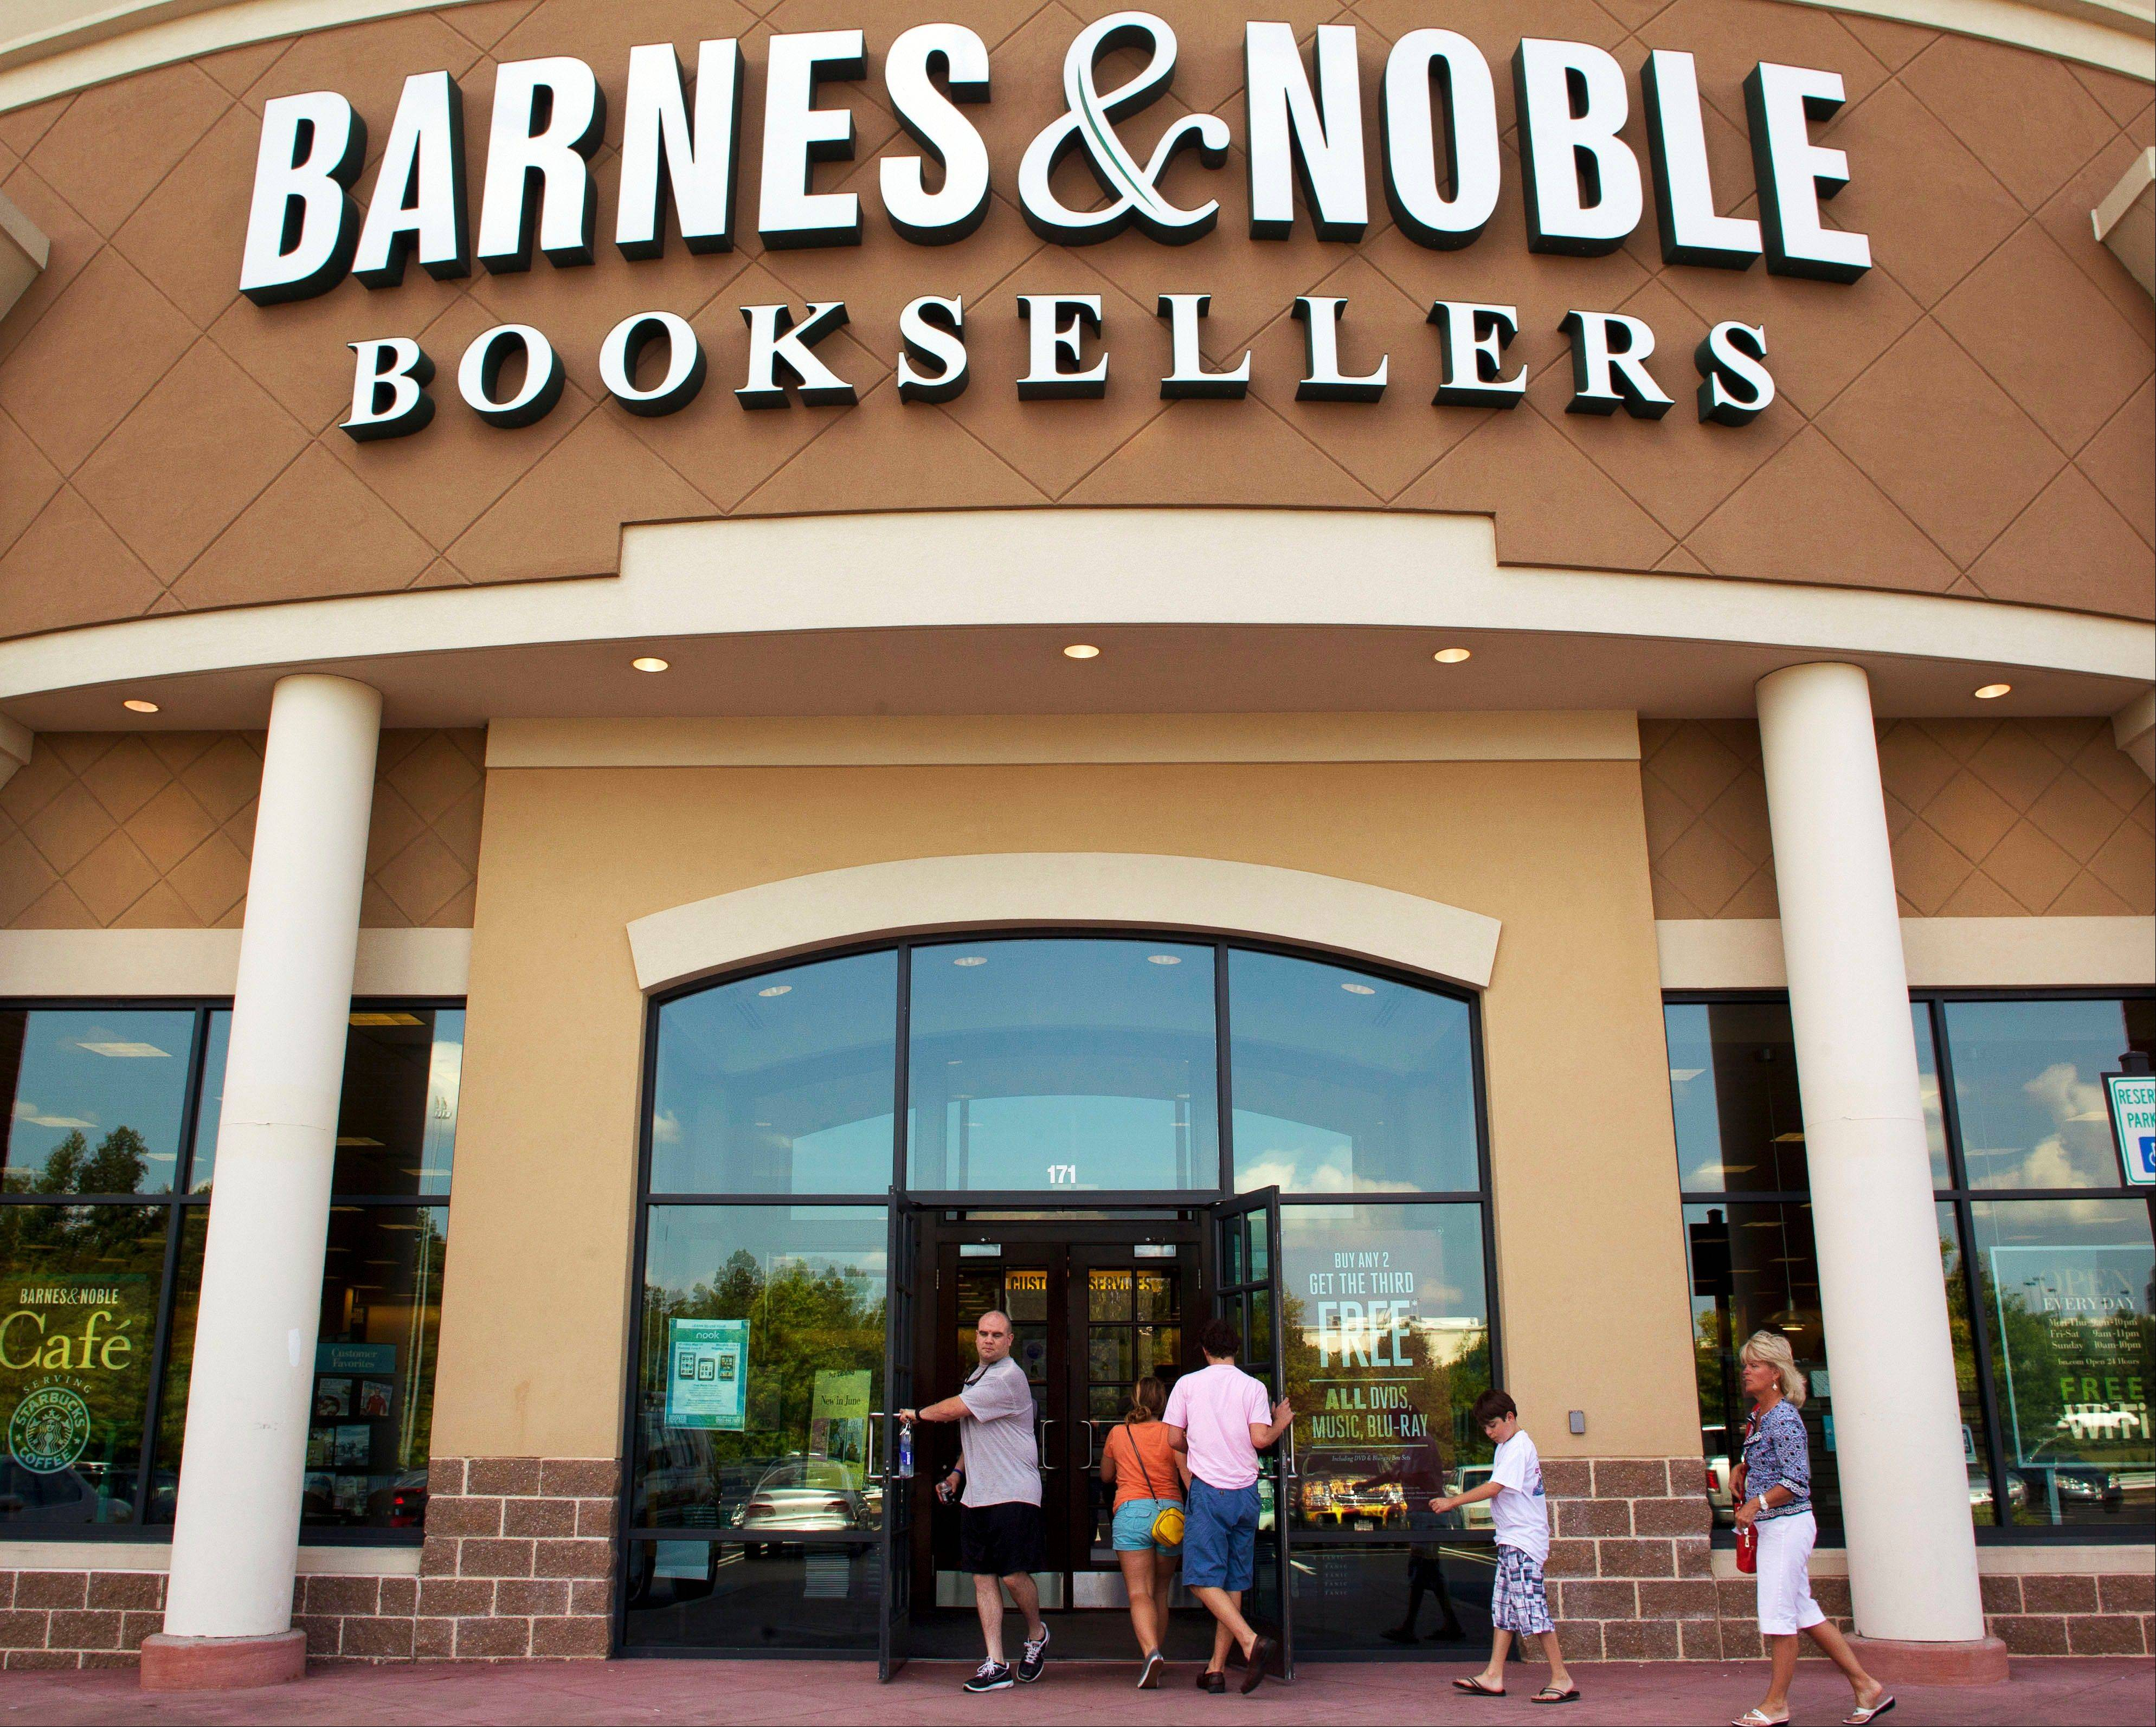 Barnes & Noble Chairman Leonard Riggio has told the book seller he is going to try to buy the company�s retail business.